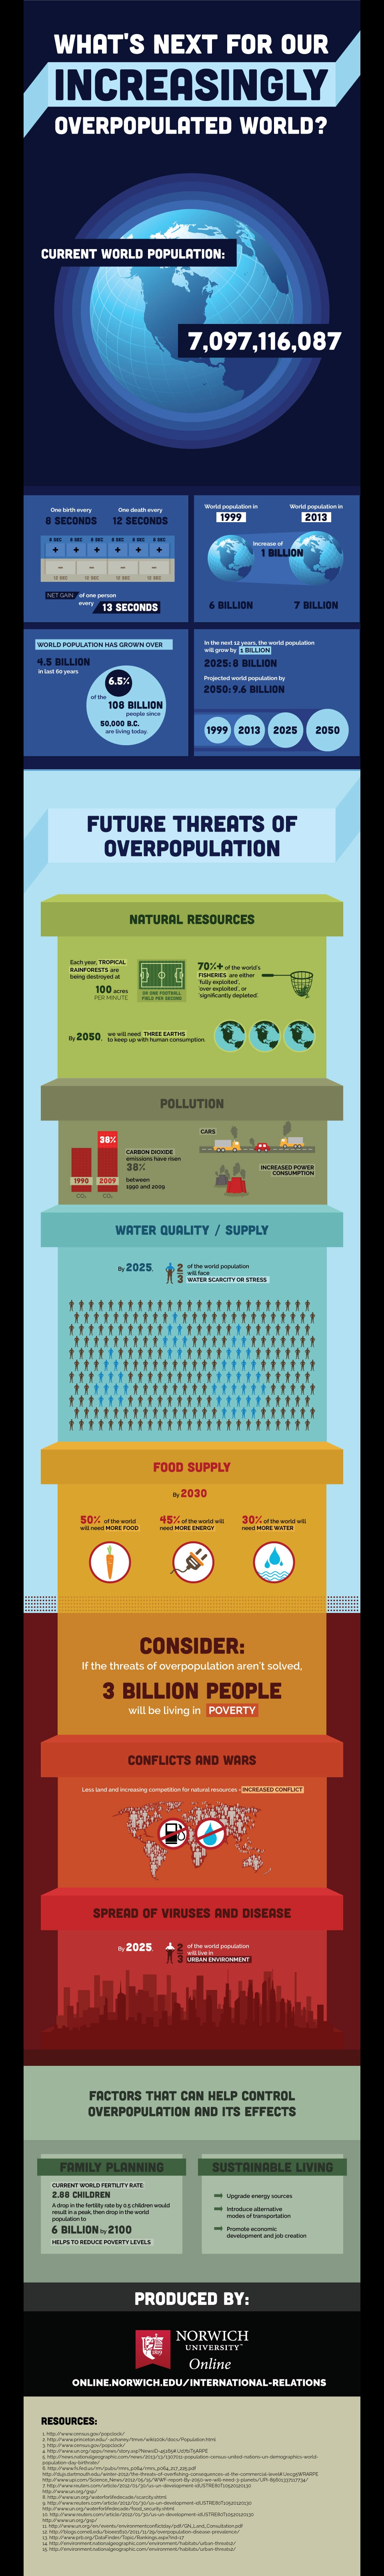 overpopulated world infographic image